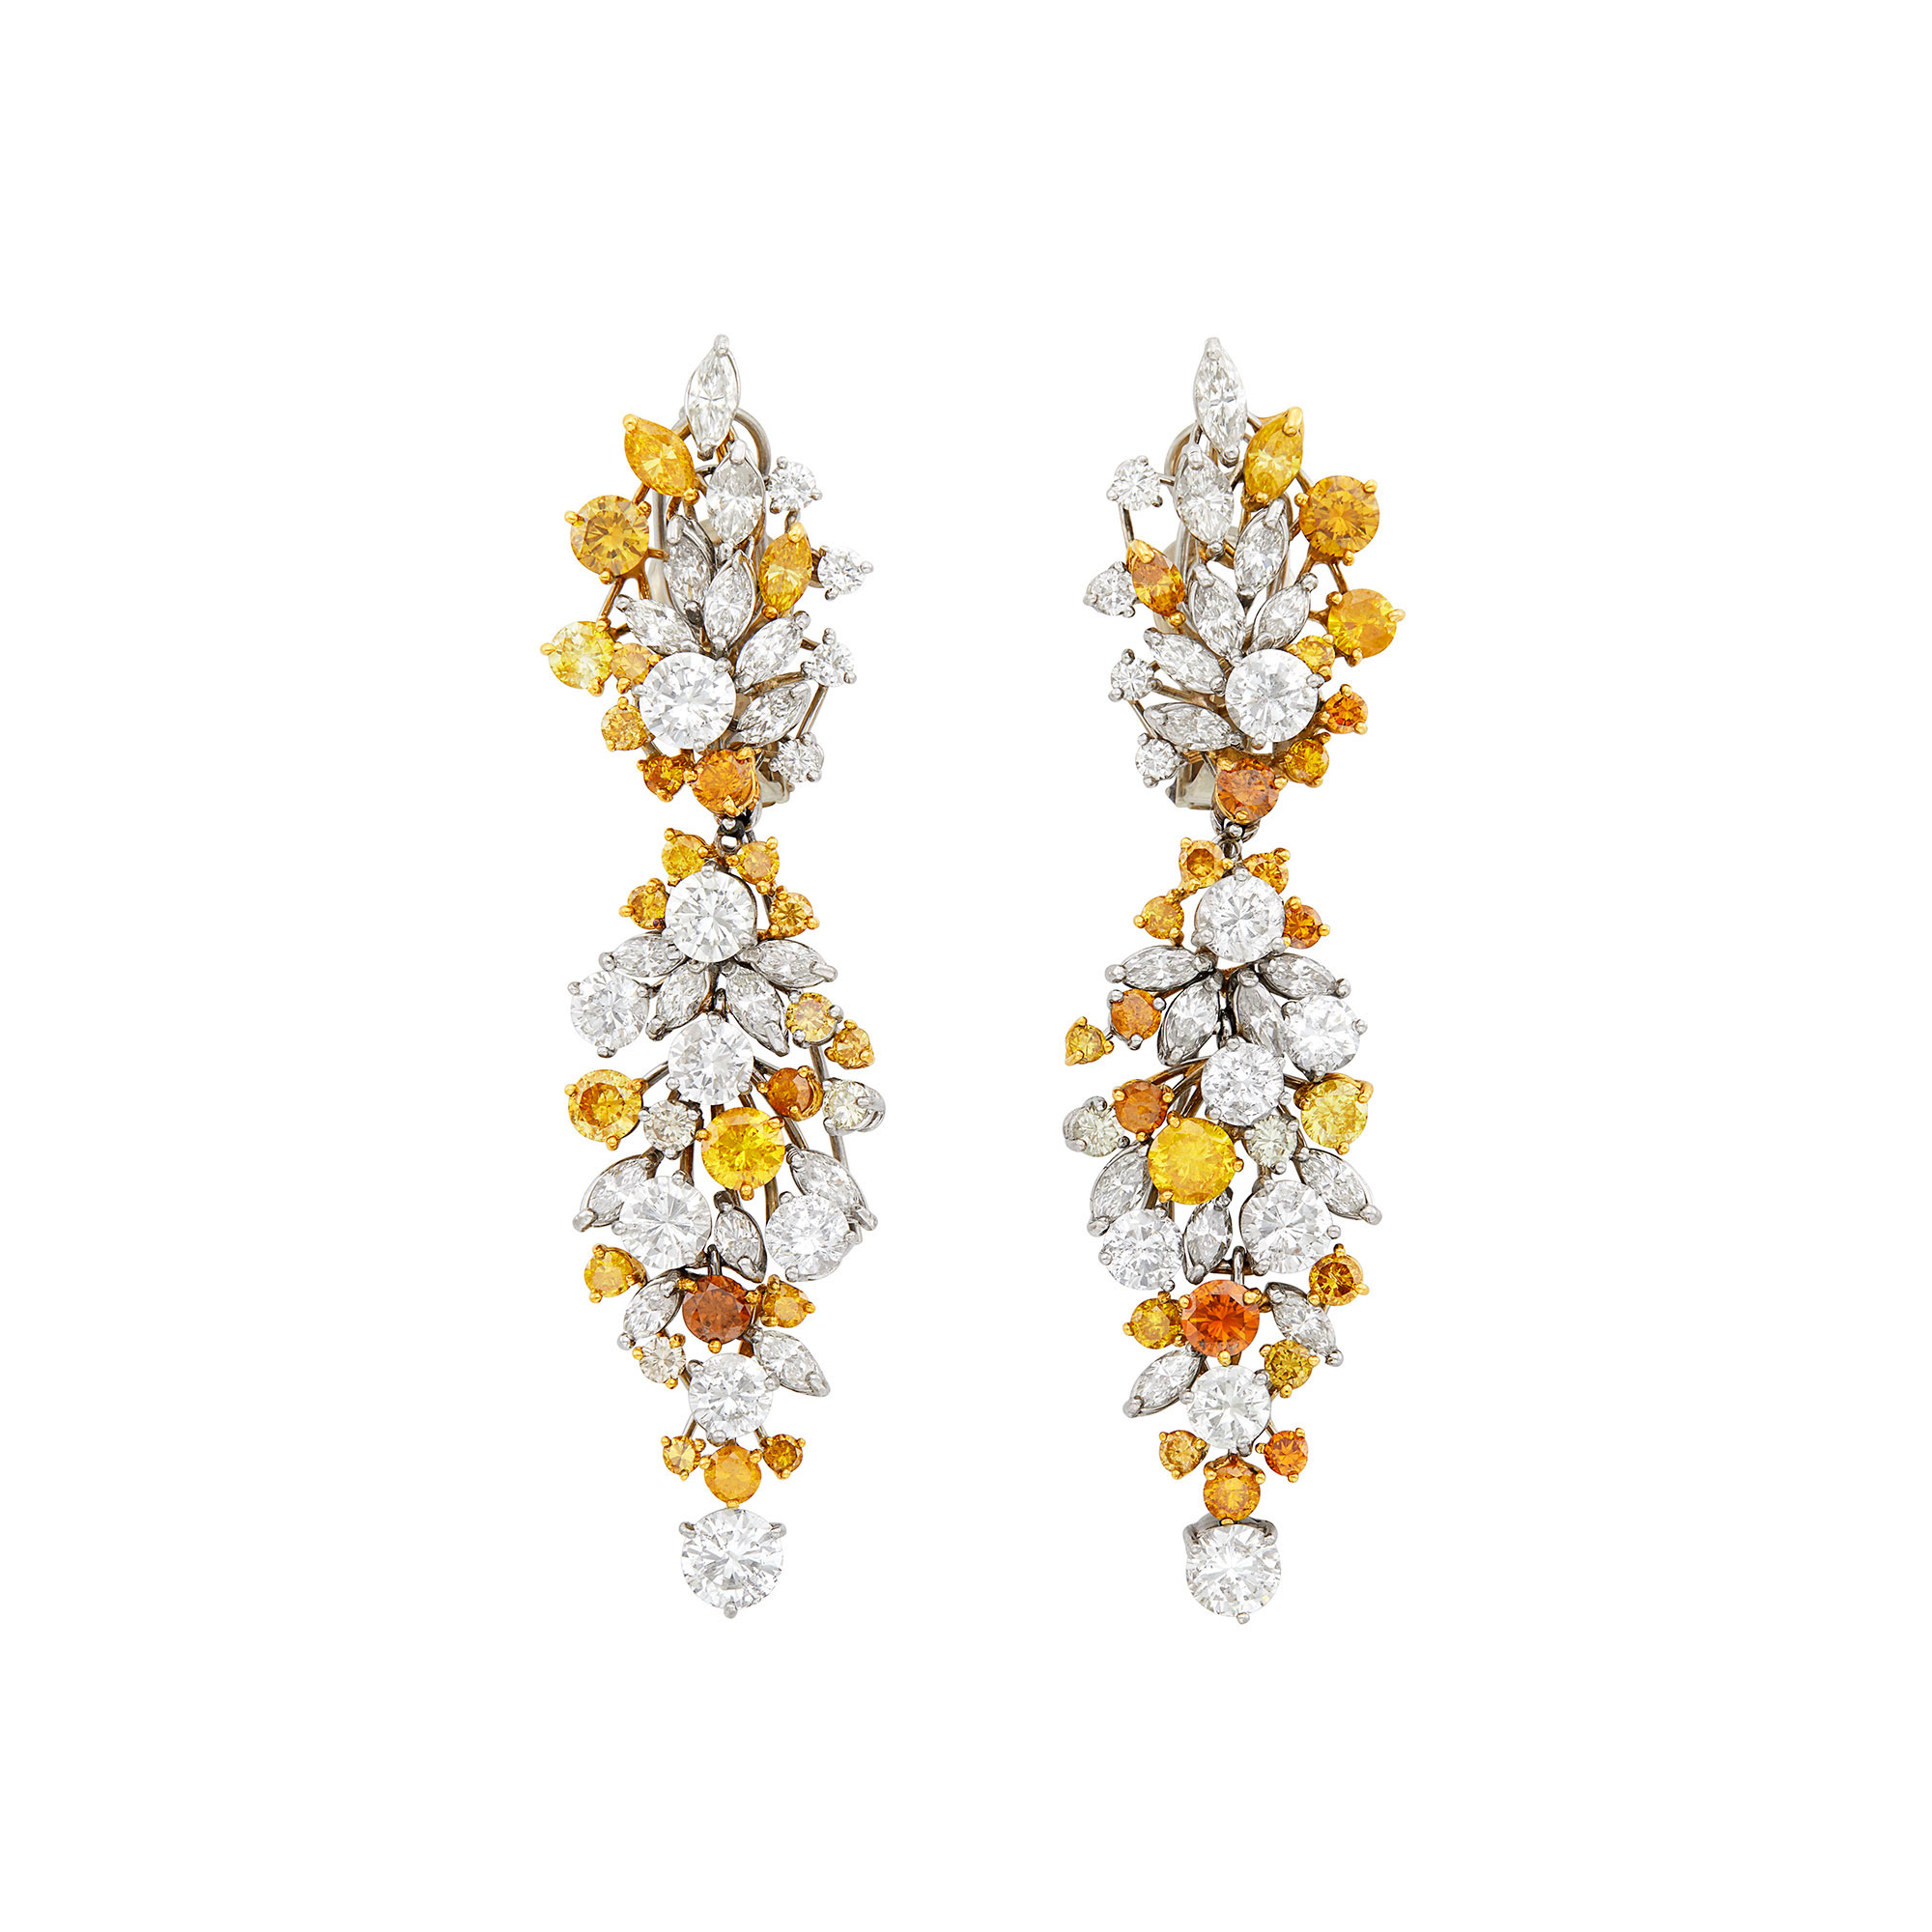 Lot image - Pair of White Gold, Diamond and Colored Diamond Pendant-Earclips with Gold Brooch Jackets/Stud Earring Combination